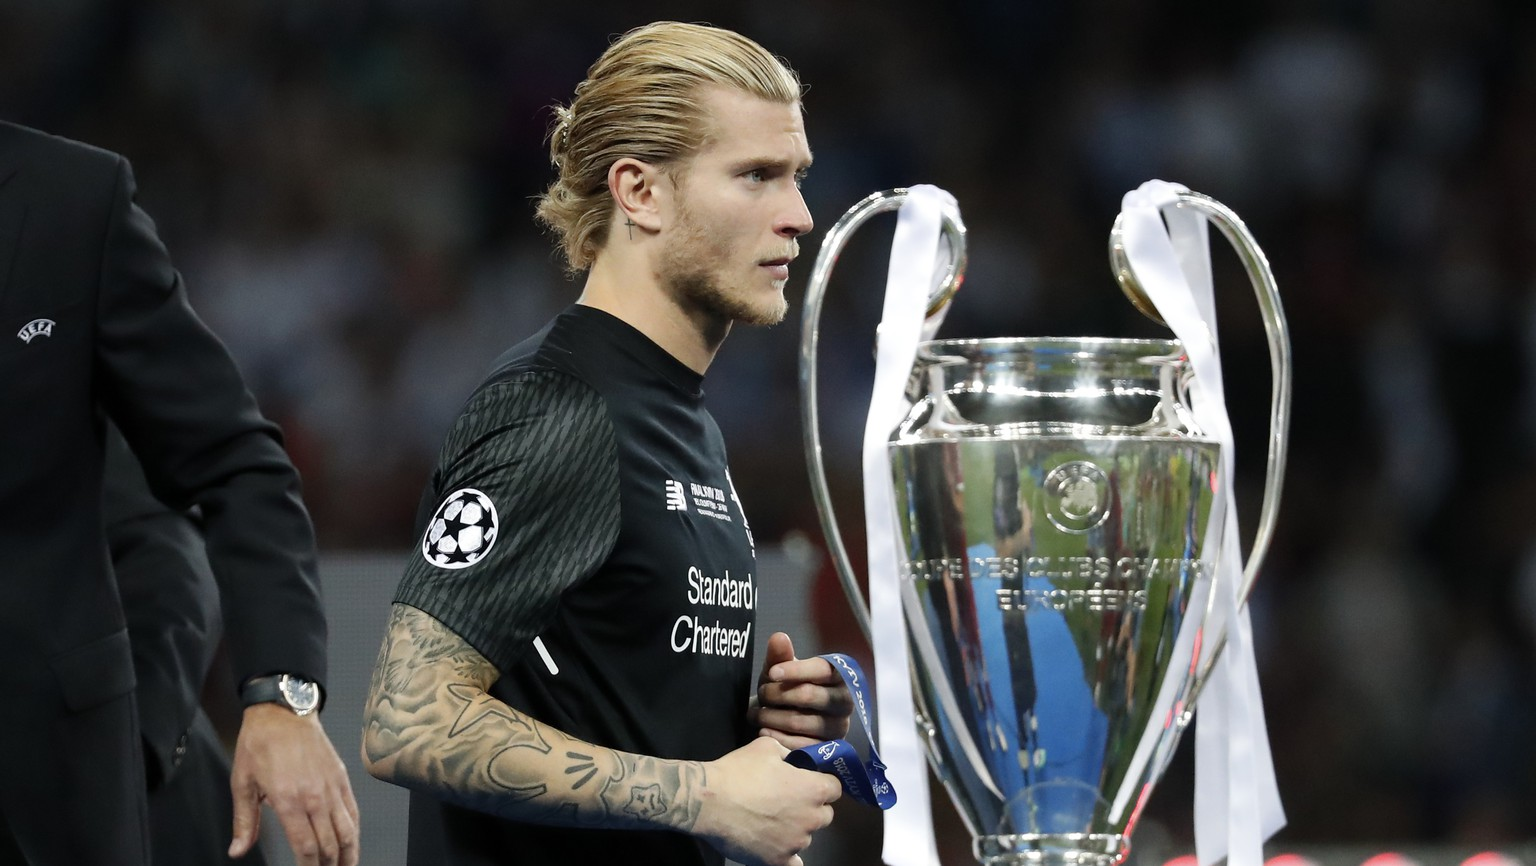 Liverpool goalkeeper Loris Karius walks past the trophy after the Champions League Final soccer match between Real Madrid and Liverpool at the Olimpiyskiy Stadium in Kiev, Ukraine, Saturday, May 26, 2018. Real Madrid won 3-1. (AP Photo/Pavel Golovkin)